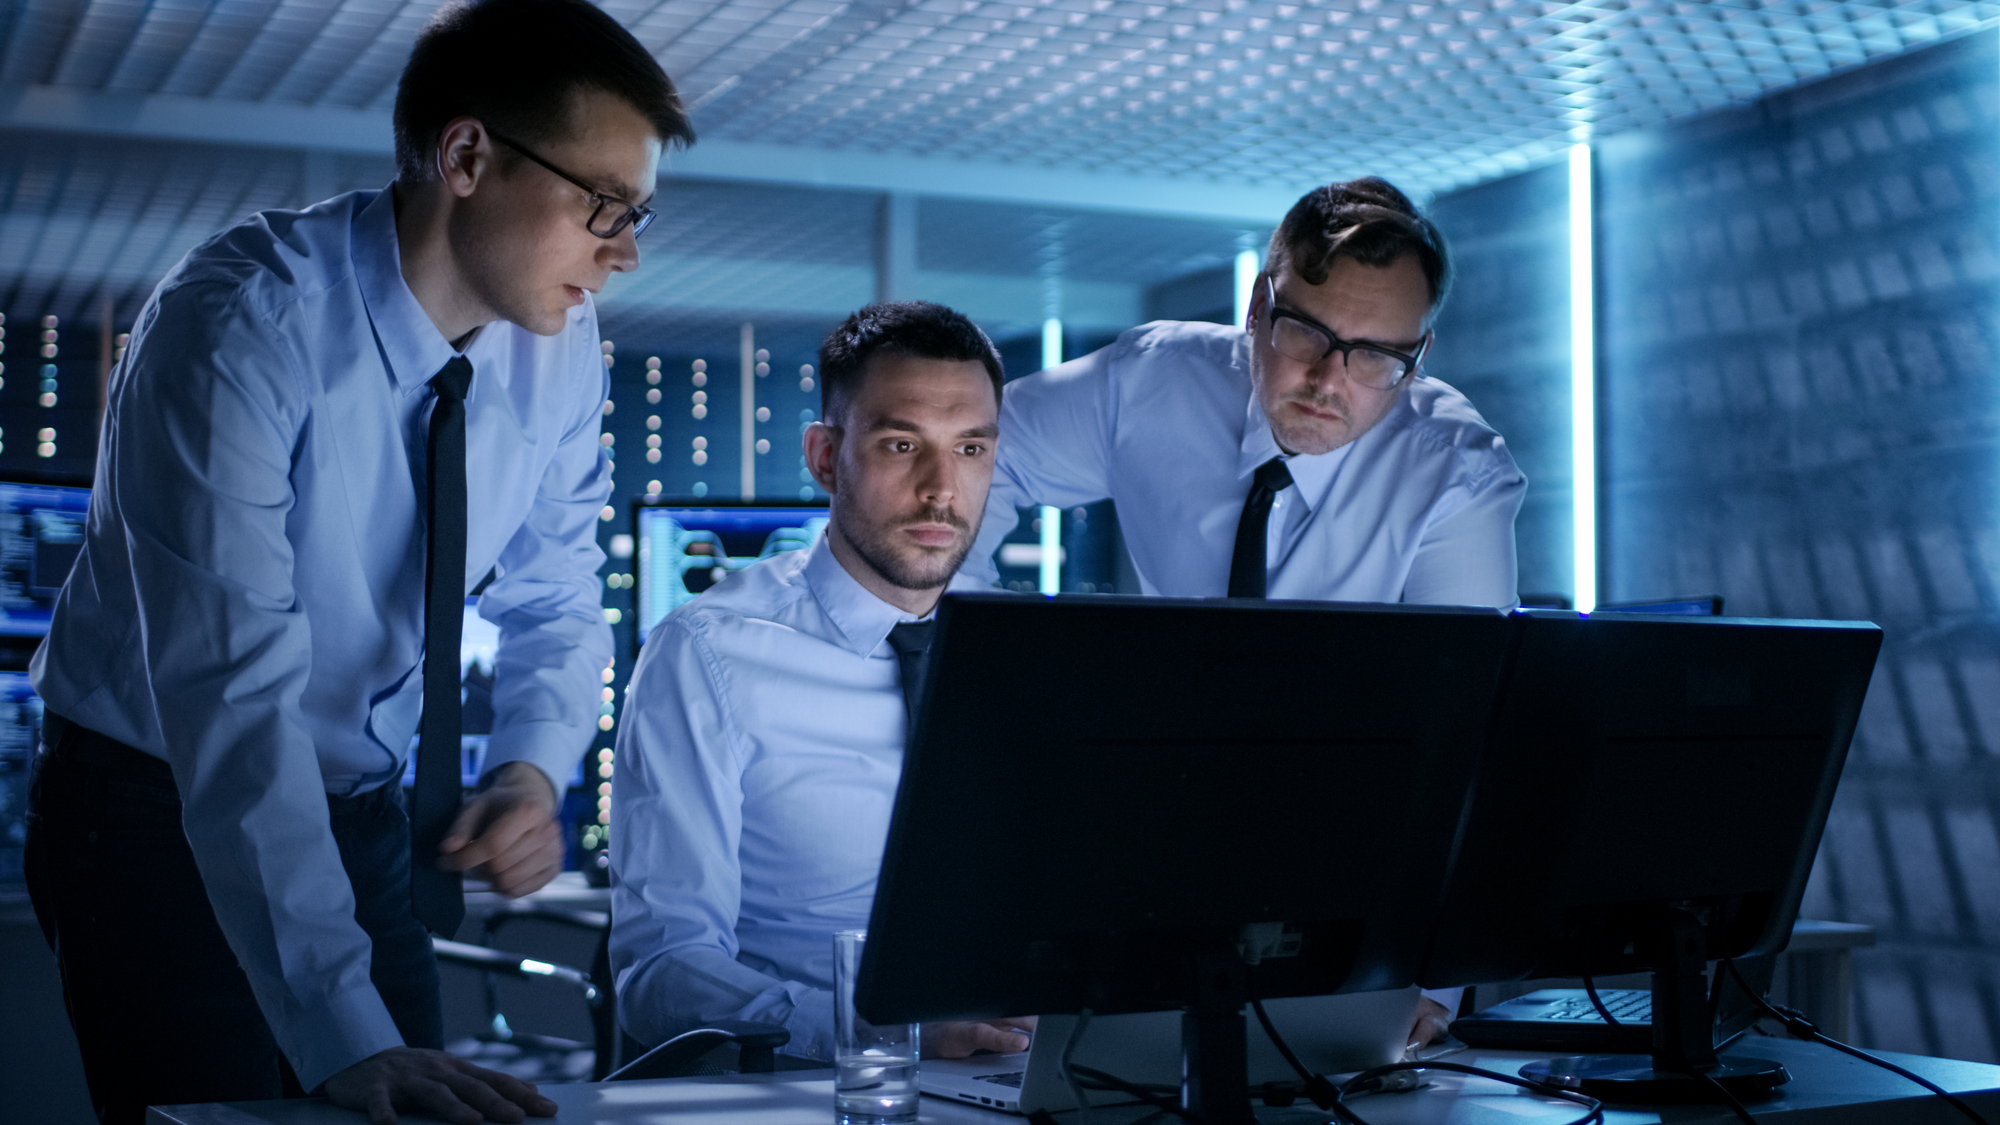 Cyber Security Trends in 2021